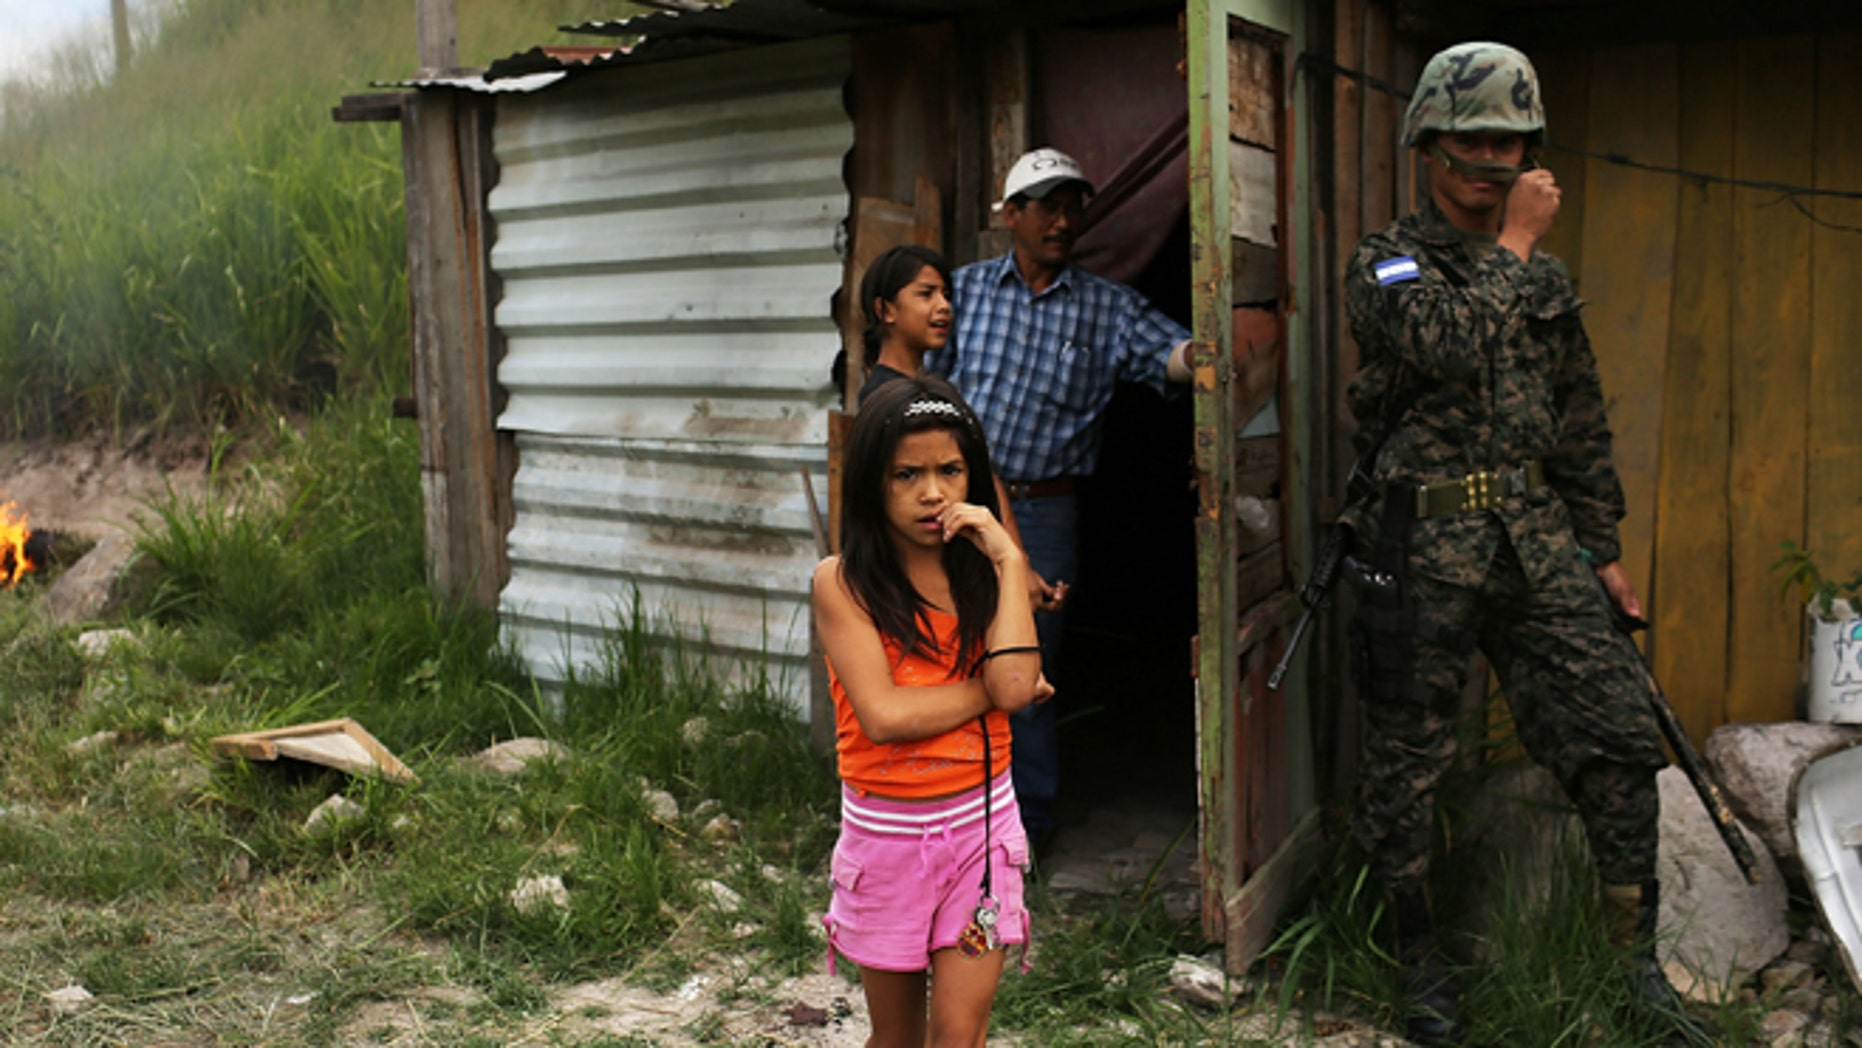 TEGUCIGALPA, HONDURAS - JULY 20:  A young girl and her family stand by their home as police and the army force them and their neighbors to dismantle the shanty town after the government claimed that the settlement was illegal on July 20, 2012 in Tegucigalpa, Honduras. Land disputes are becoming increasingly frequent in Honduras  which is alarming the nation's business class while sowing fears of increased political violence. In a nation where 72% of the poorest landowners hold only 11.6% of cultivated land, tensions are rising as the poor have few places to go and little opportunities for productive employment. Honduras now has the highest per capita murder rate in the world and its capital city, Tegucigalpa, is plagued by violence, poverty, homelessness and sexual assaults. With an estimated 80% of the cocaine entering the United States now being trans-shipped through Honduras, the violence on the streets is a spillover from the ramped rise in narco-trafficking.  (Photo by Spencer Platt/Getty Images)